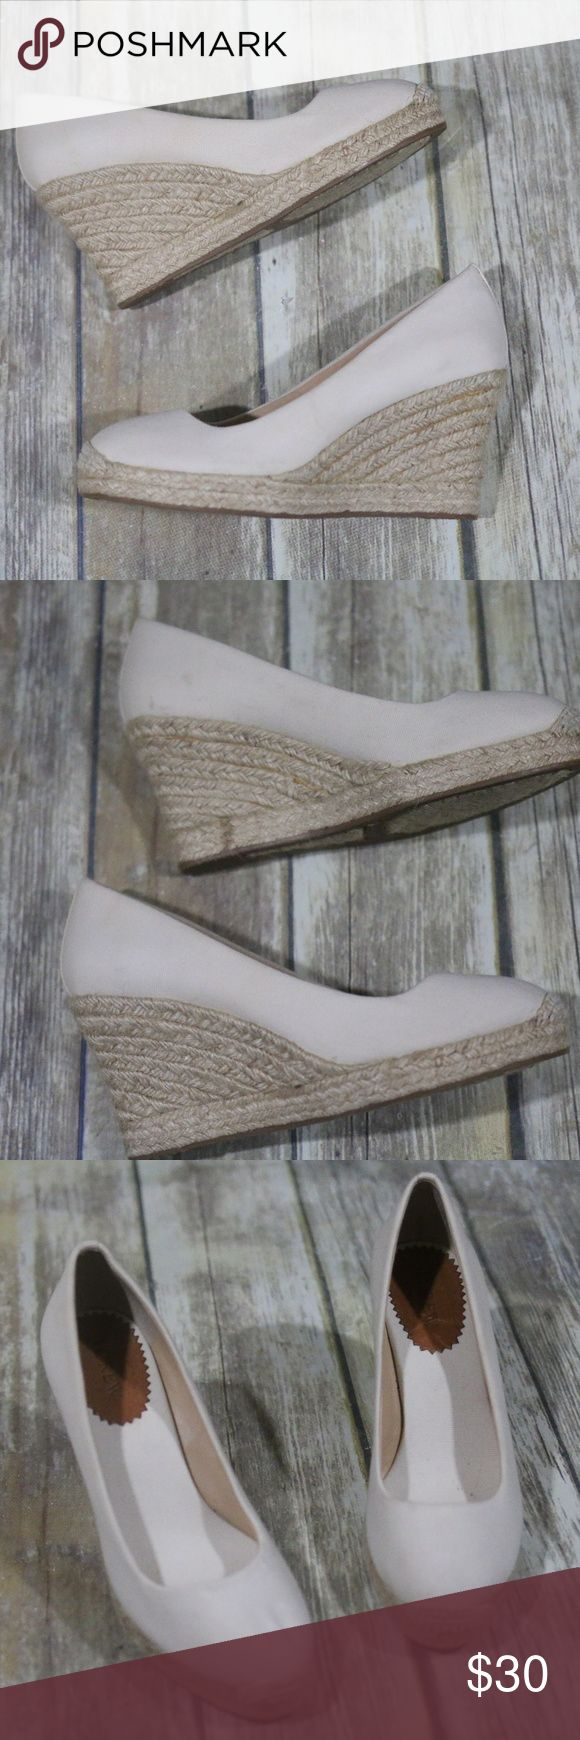 """J. Crew Canvas Espadrille Wedge Seville A1244 J. Crew Factory Women's Canvas Espadrille Wedge Shoes.  (Resemble the Seville, but I think these may be the factory comparable).  Size 7.  Style A1244.  Beige.  Canvas upper.  3 3/4"""" heel.  Rubber sole.  In good, preowned condition.  There are a few scuffs and faint water marks.  Very little wear to bottoms.  No trades, offers welcome. J. Crew Shoes Wedges"""